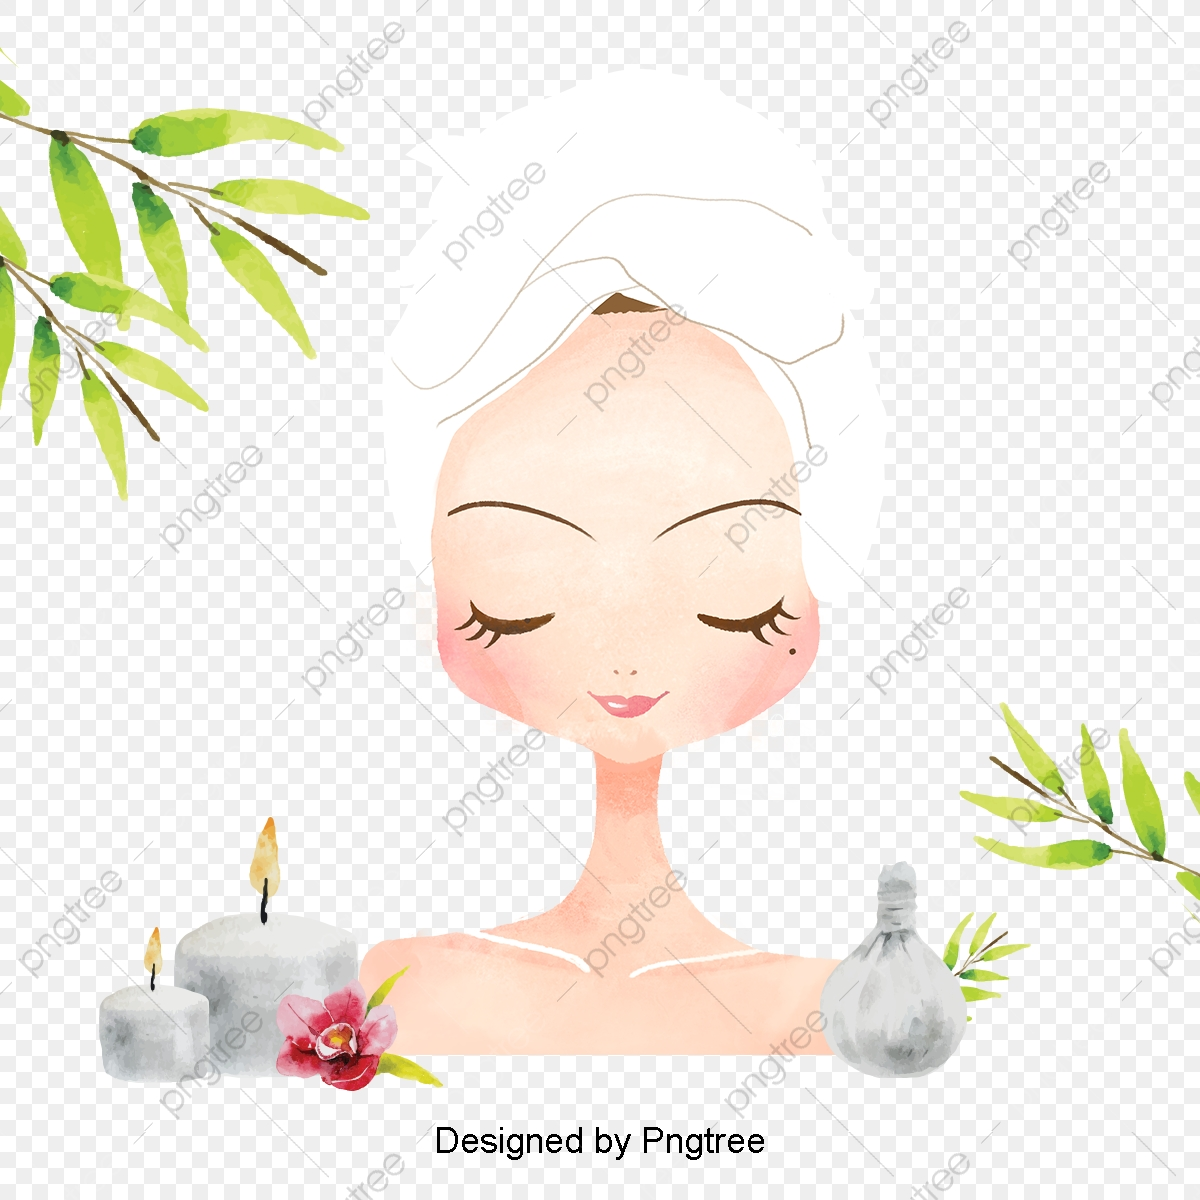 Beautiful Cartoon Lovely Hand Painted Beauty Beauty Skin Care Spa Health Aesthetic Cartoon Hand Painted Png Transparent Clipart Image And Psd File For Free Download